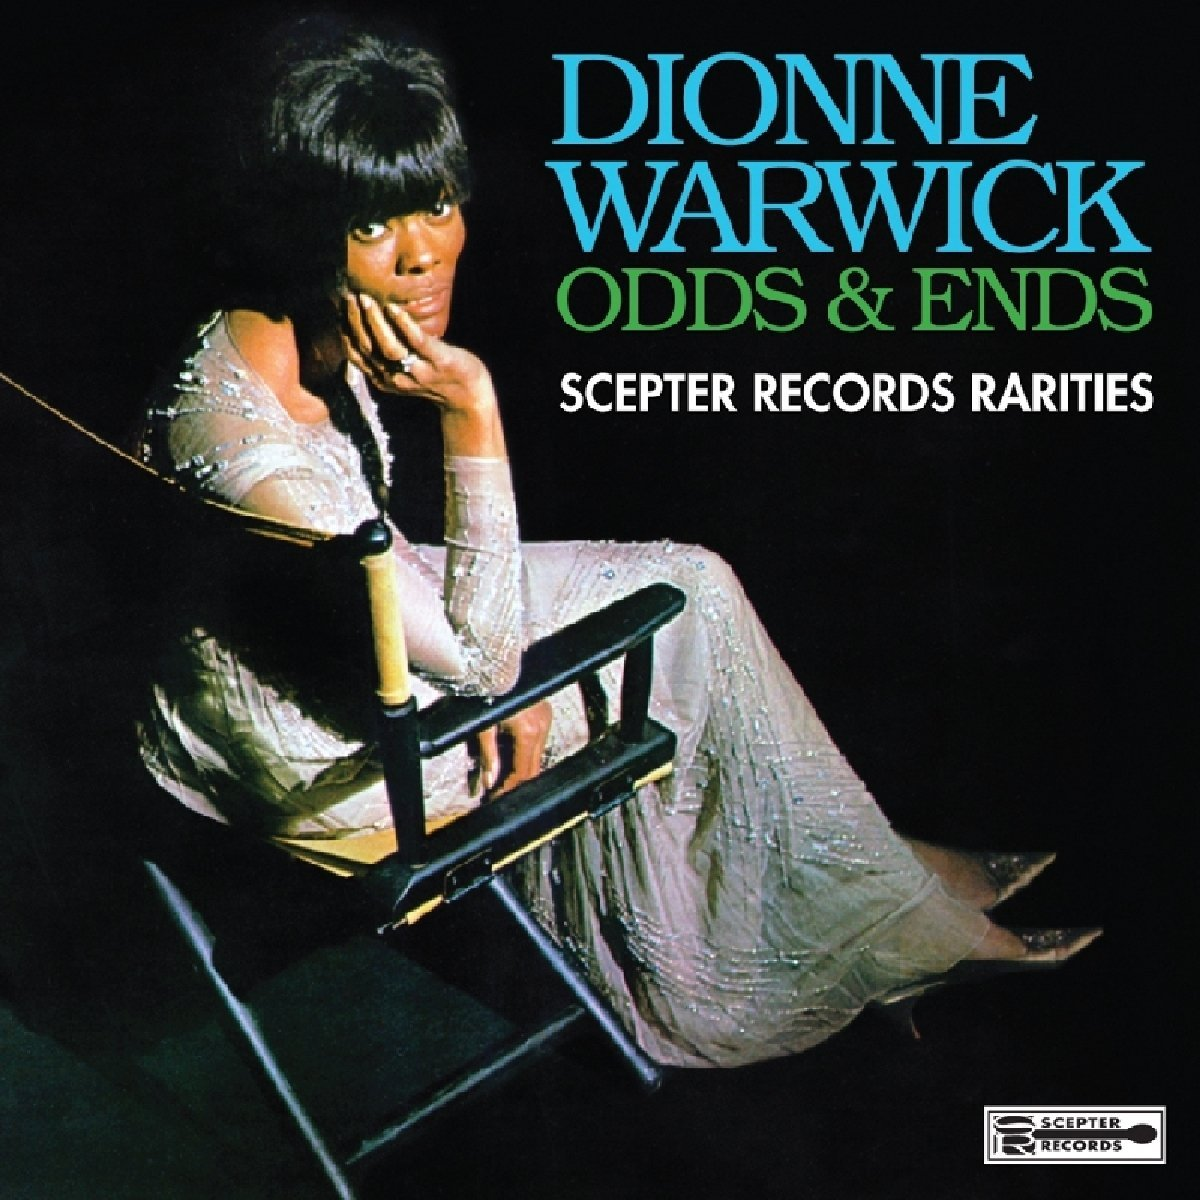 DIONNE WARWICK - ODDS & ENDS (CD)